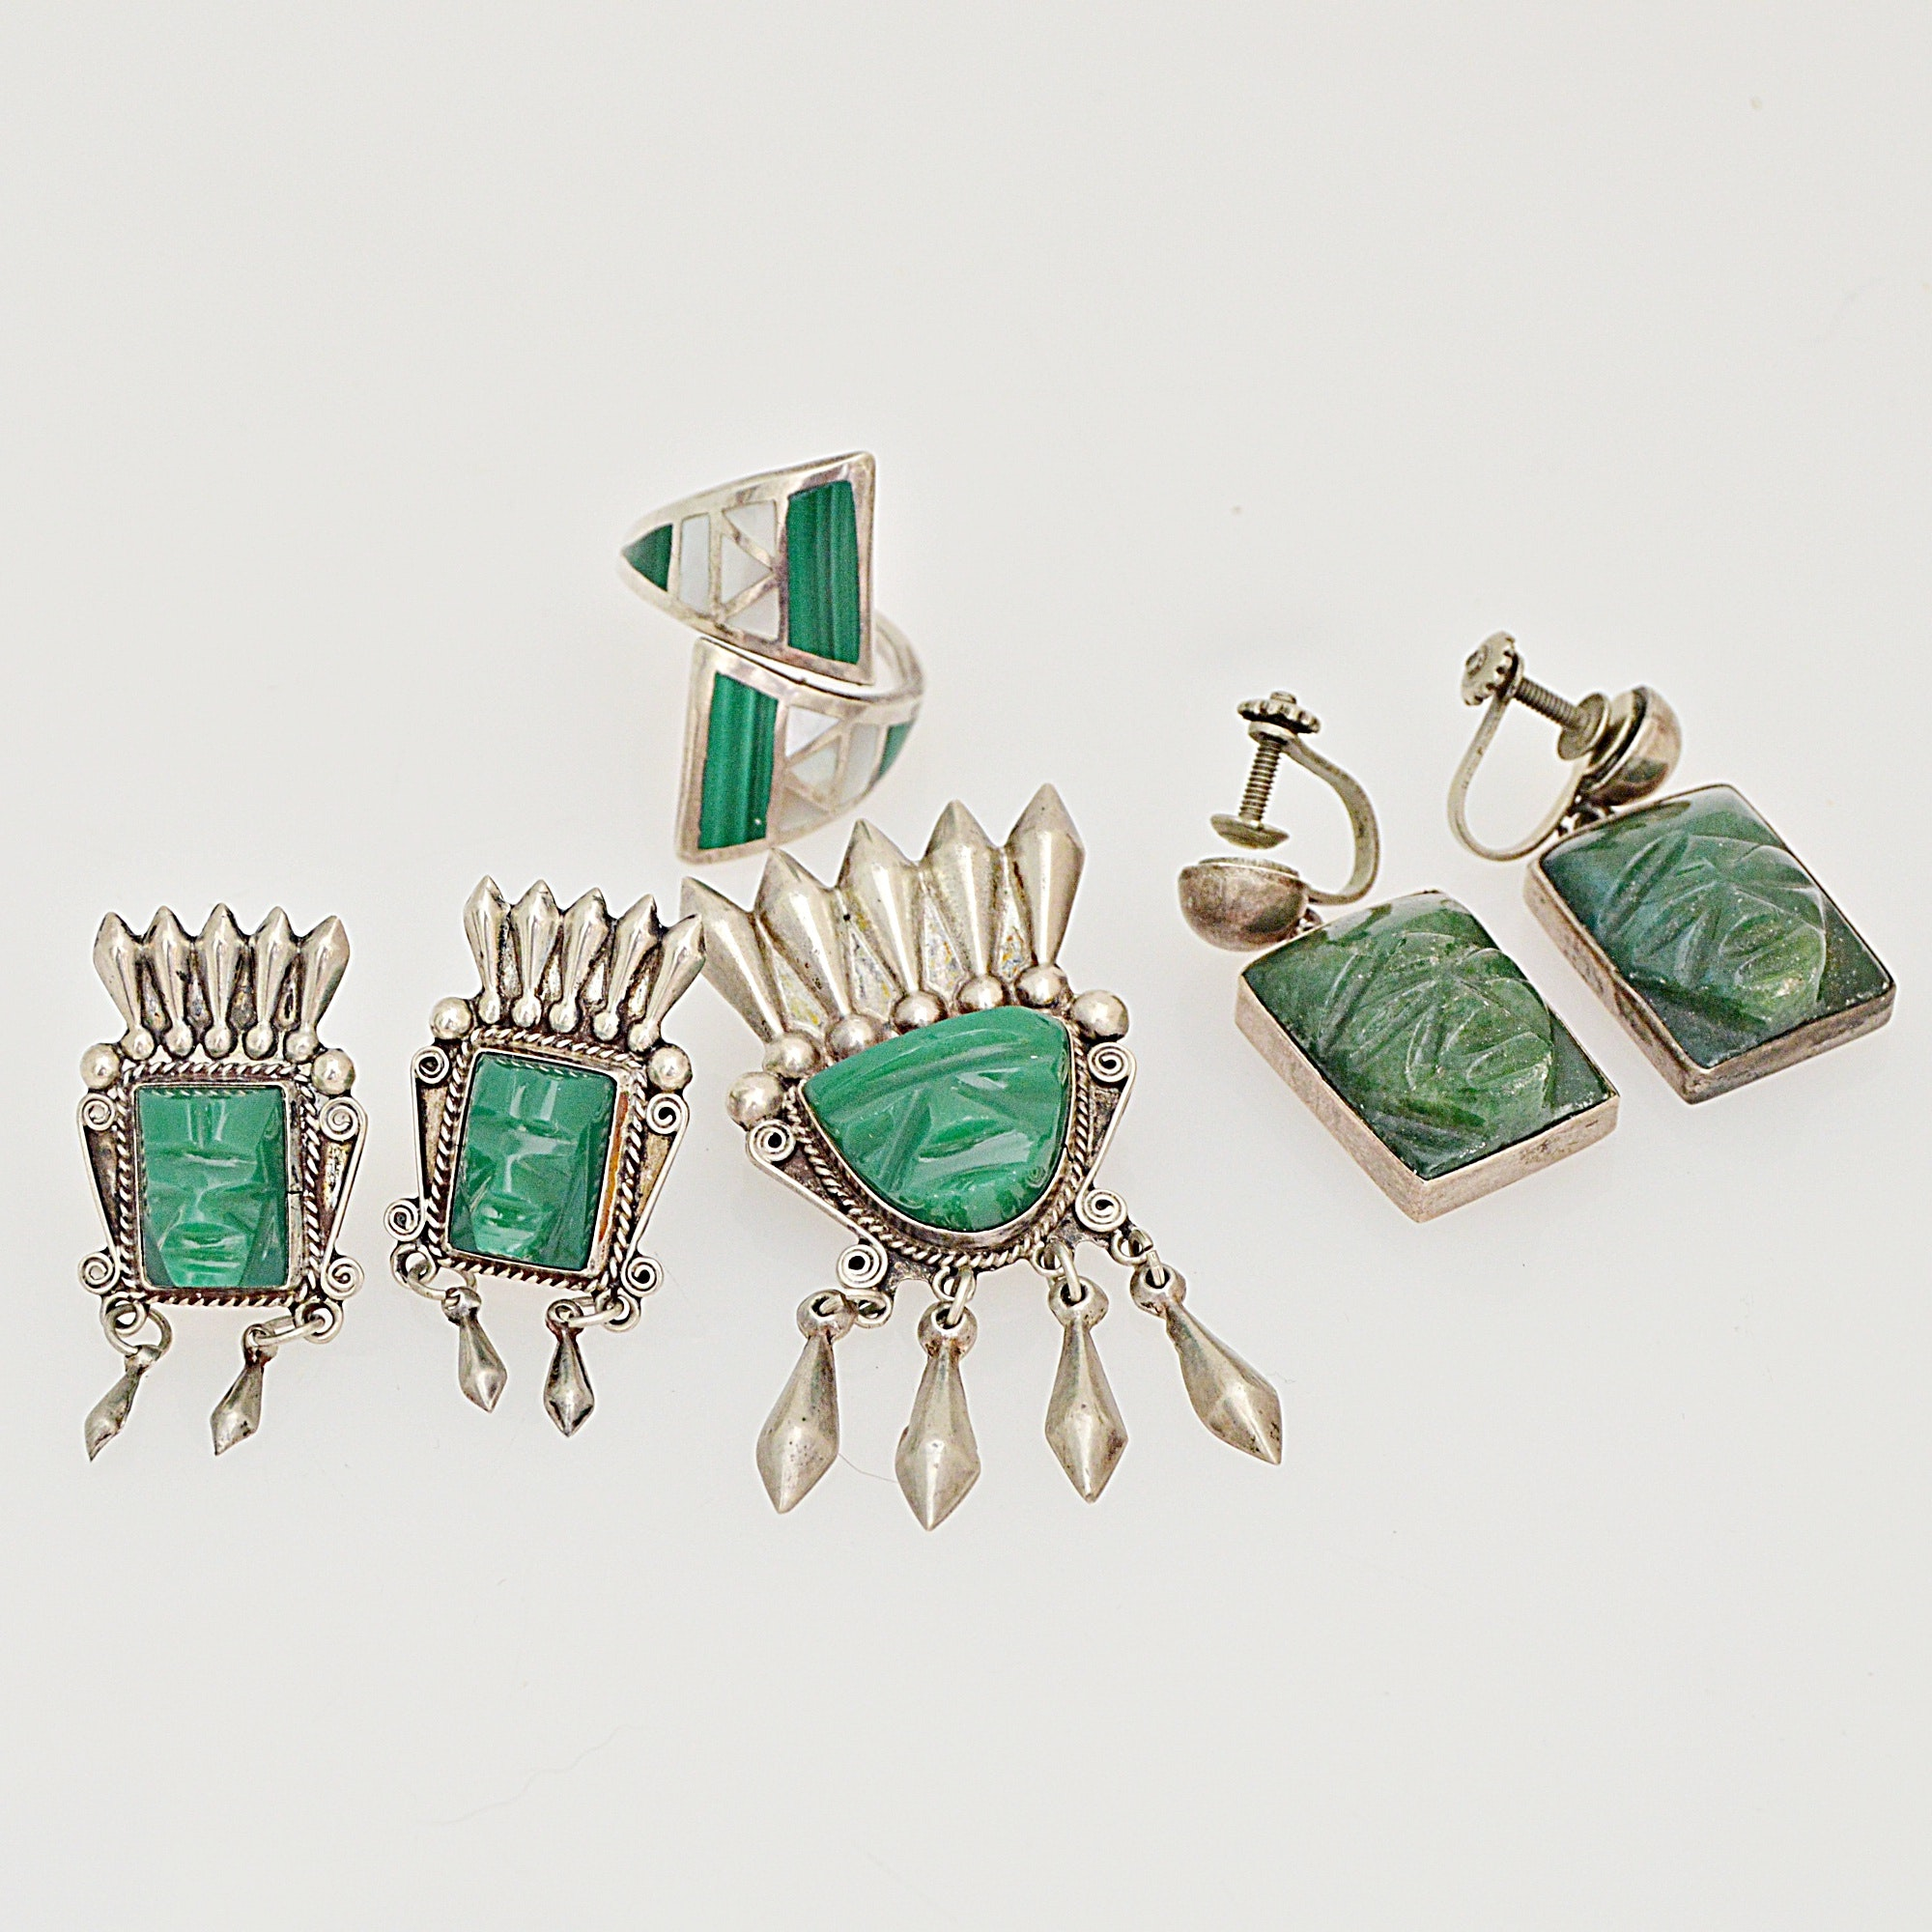 Vintage Mexican Sterling Silver, Calcite, Malachite and Mother-of-Pearl Jewelry